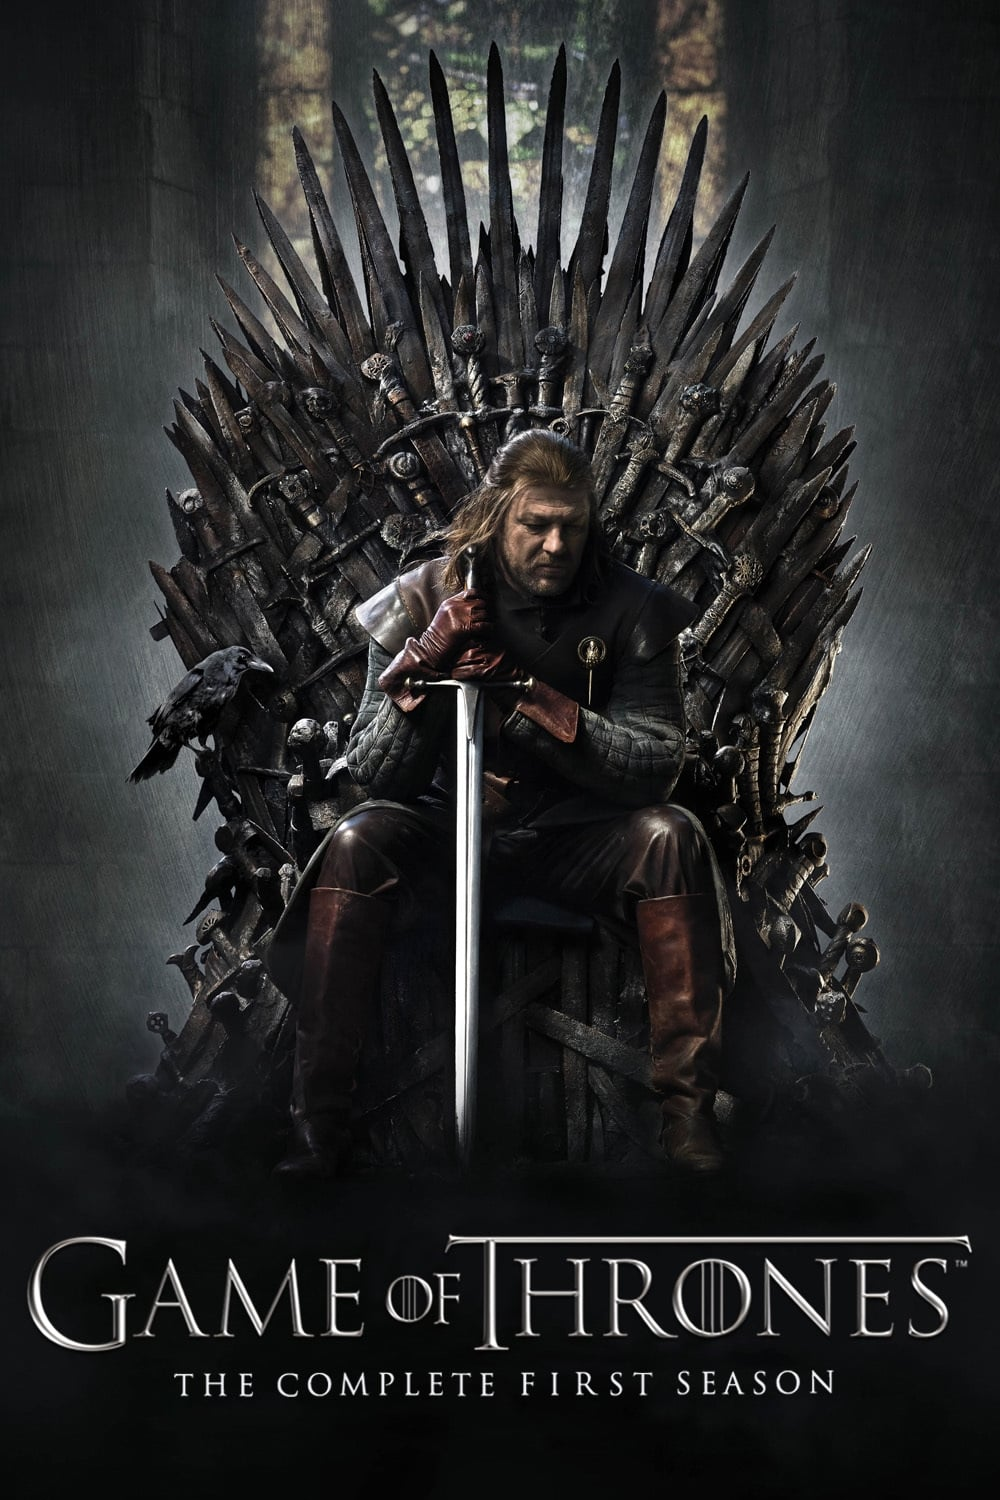 http://kirika.info/game-of-thrones-1a-temporada-2011-bdrip-bluray-720p-torrent-dual-audio/